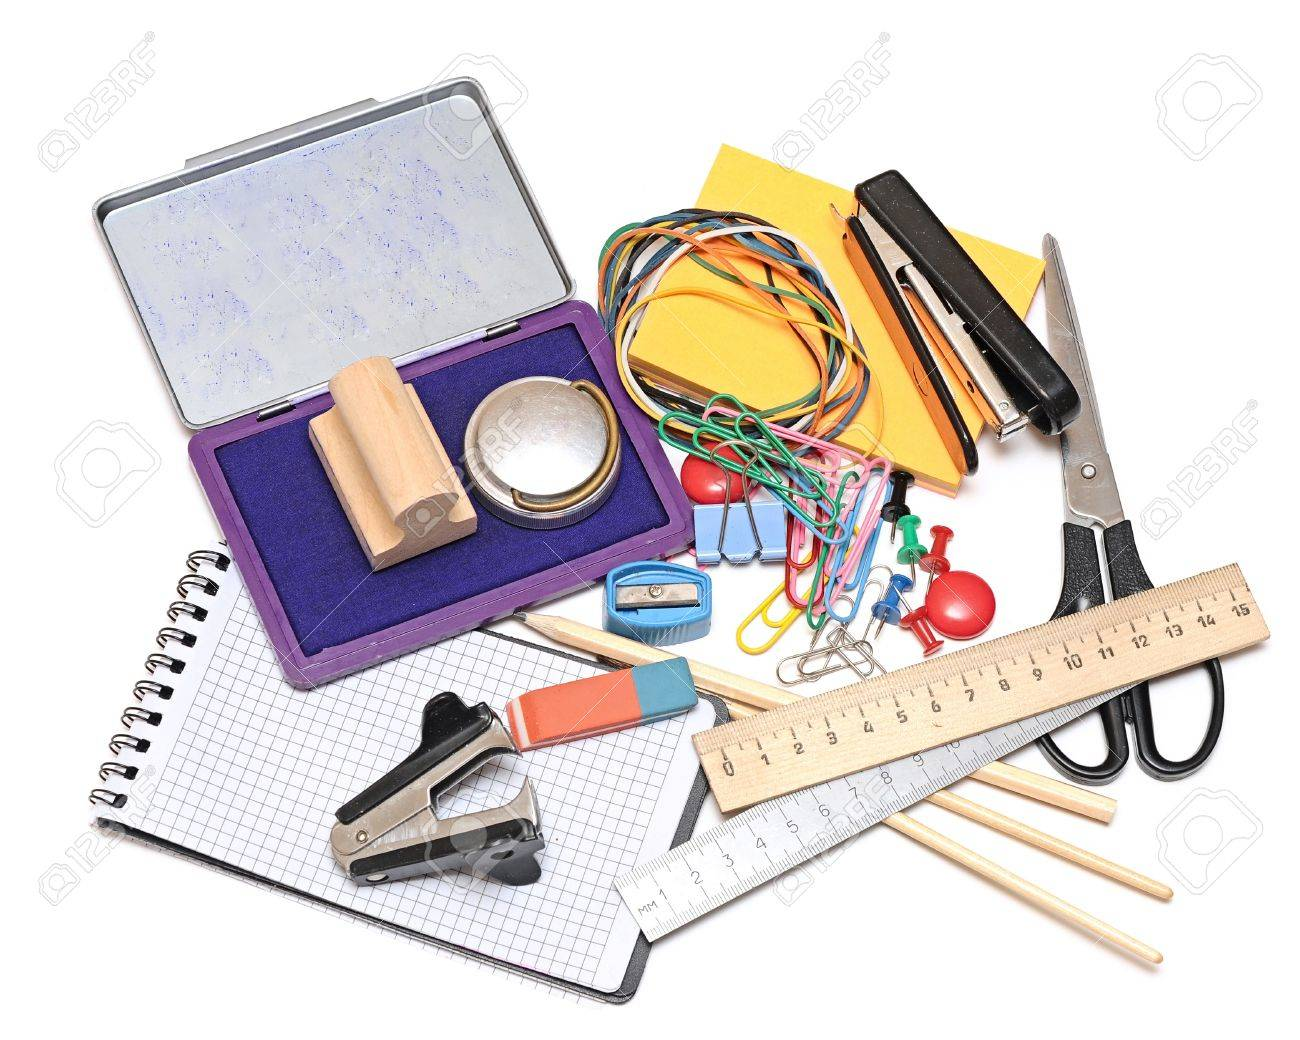 Many Office Tools On White Background Stock Photo, Picture And ...